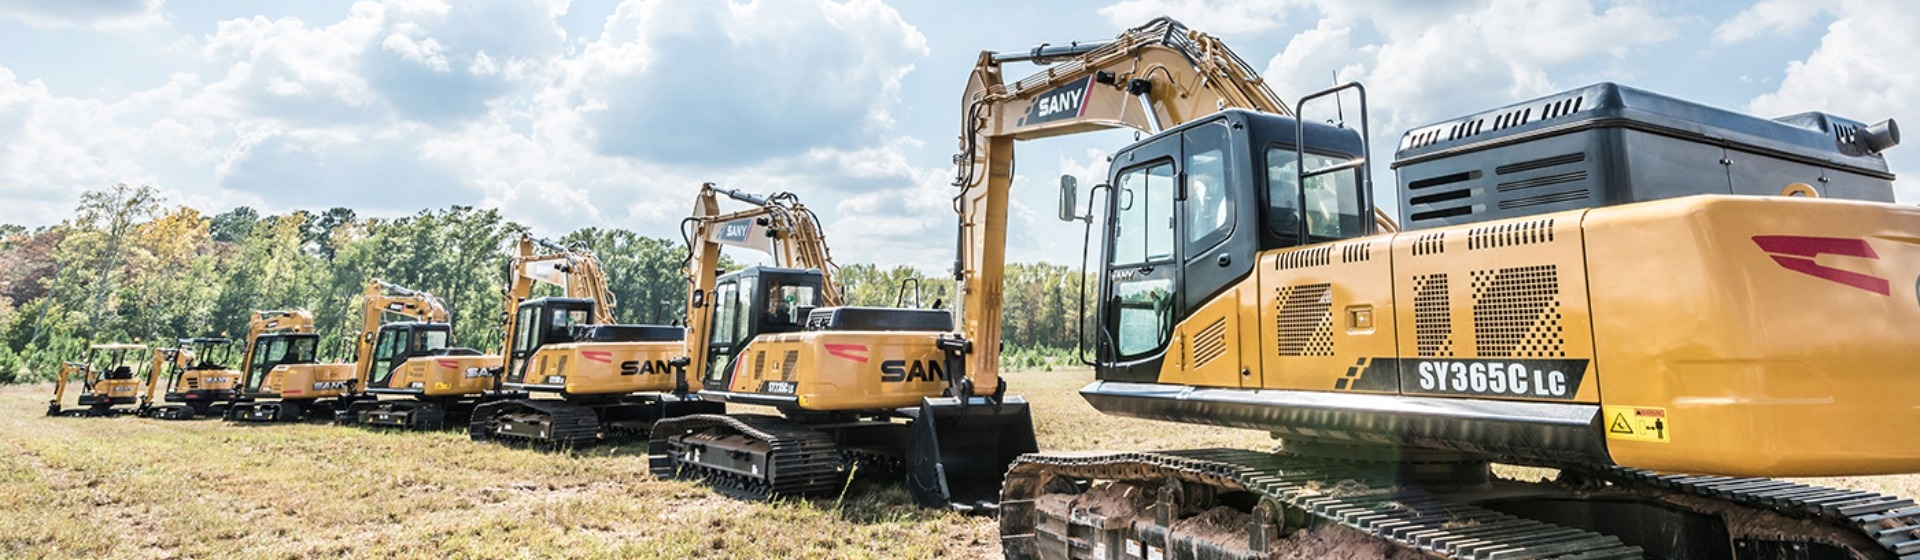 Sany Excavators: Built to deliver efficiency, safety and performance